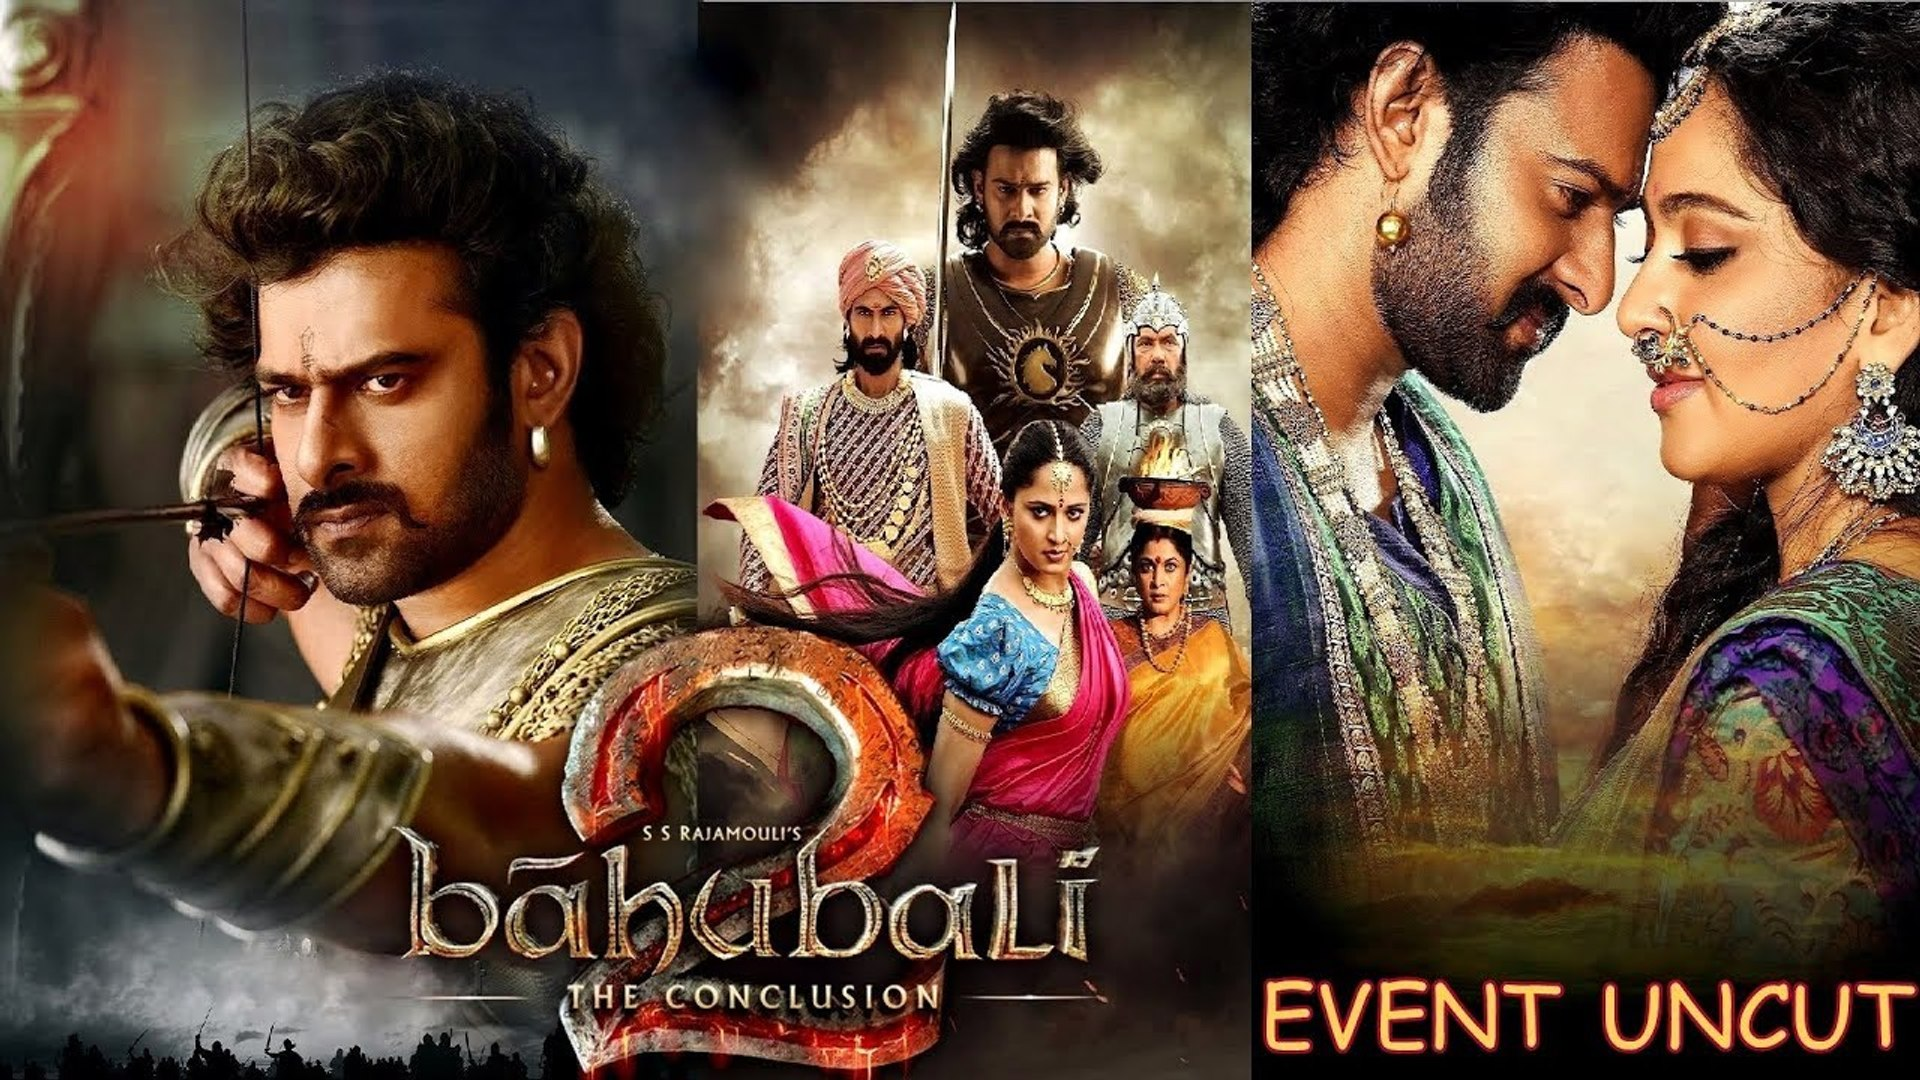 New latest movie Baahubali 2 in hindi/urdu dubbing Part 1 The Conclusion  (2017) Subtitle Malay HD